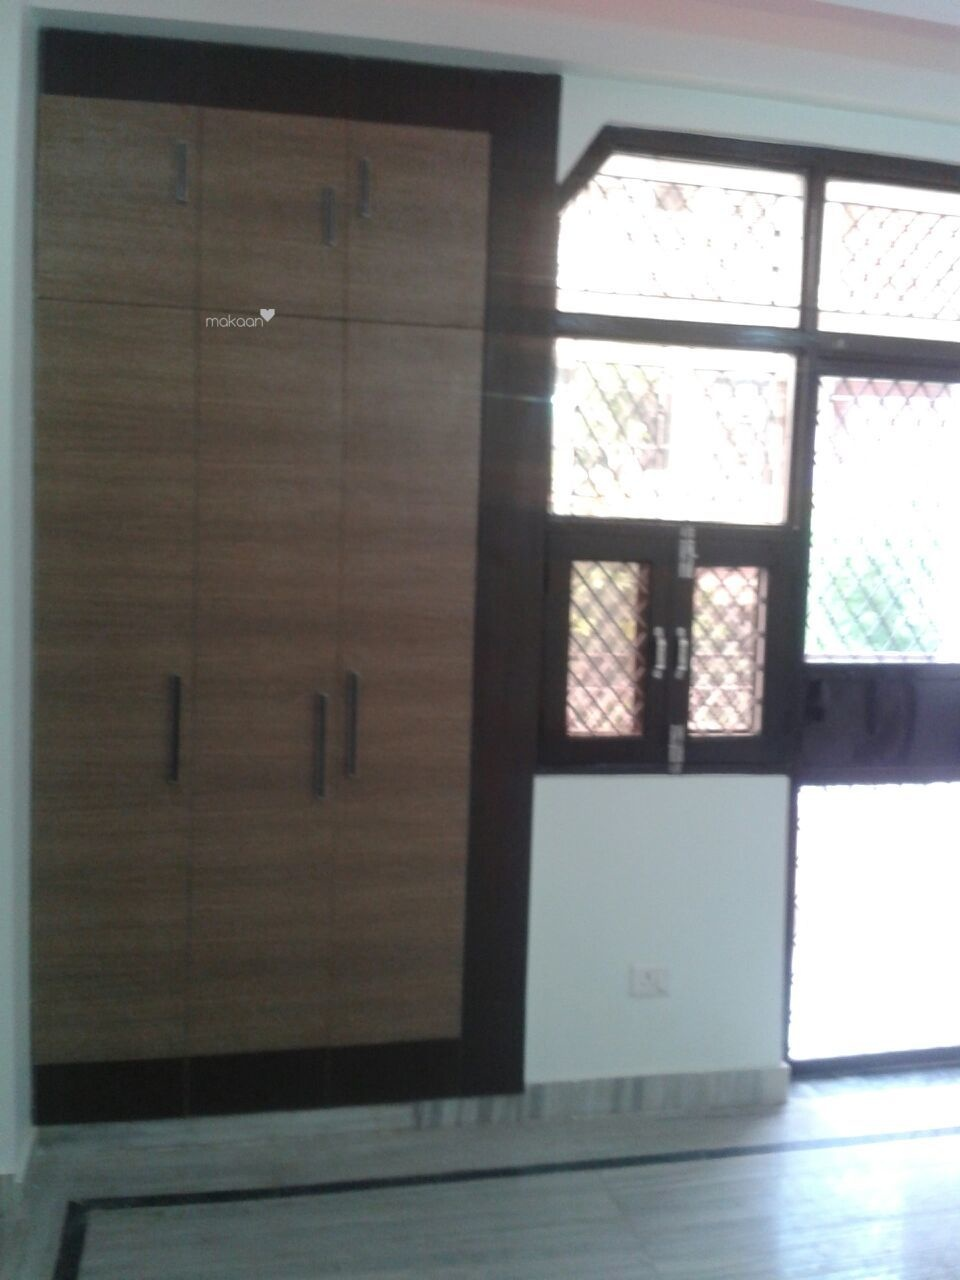 1205 sq ft 3BHK 3BHK+2T (1,205 sq ft) + Pooja Room Property By INVESTORS HOUSE PROPMART In Project, Niti Khand